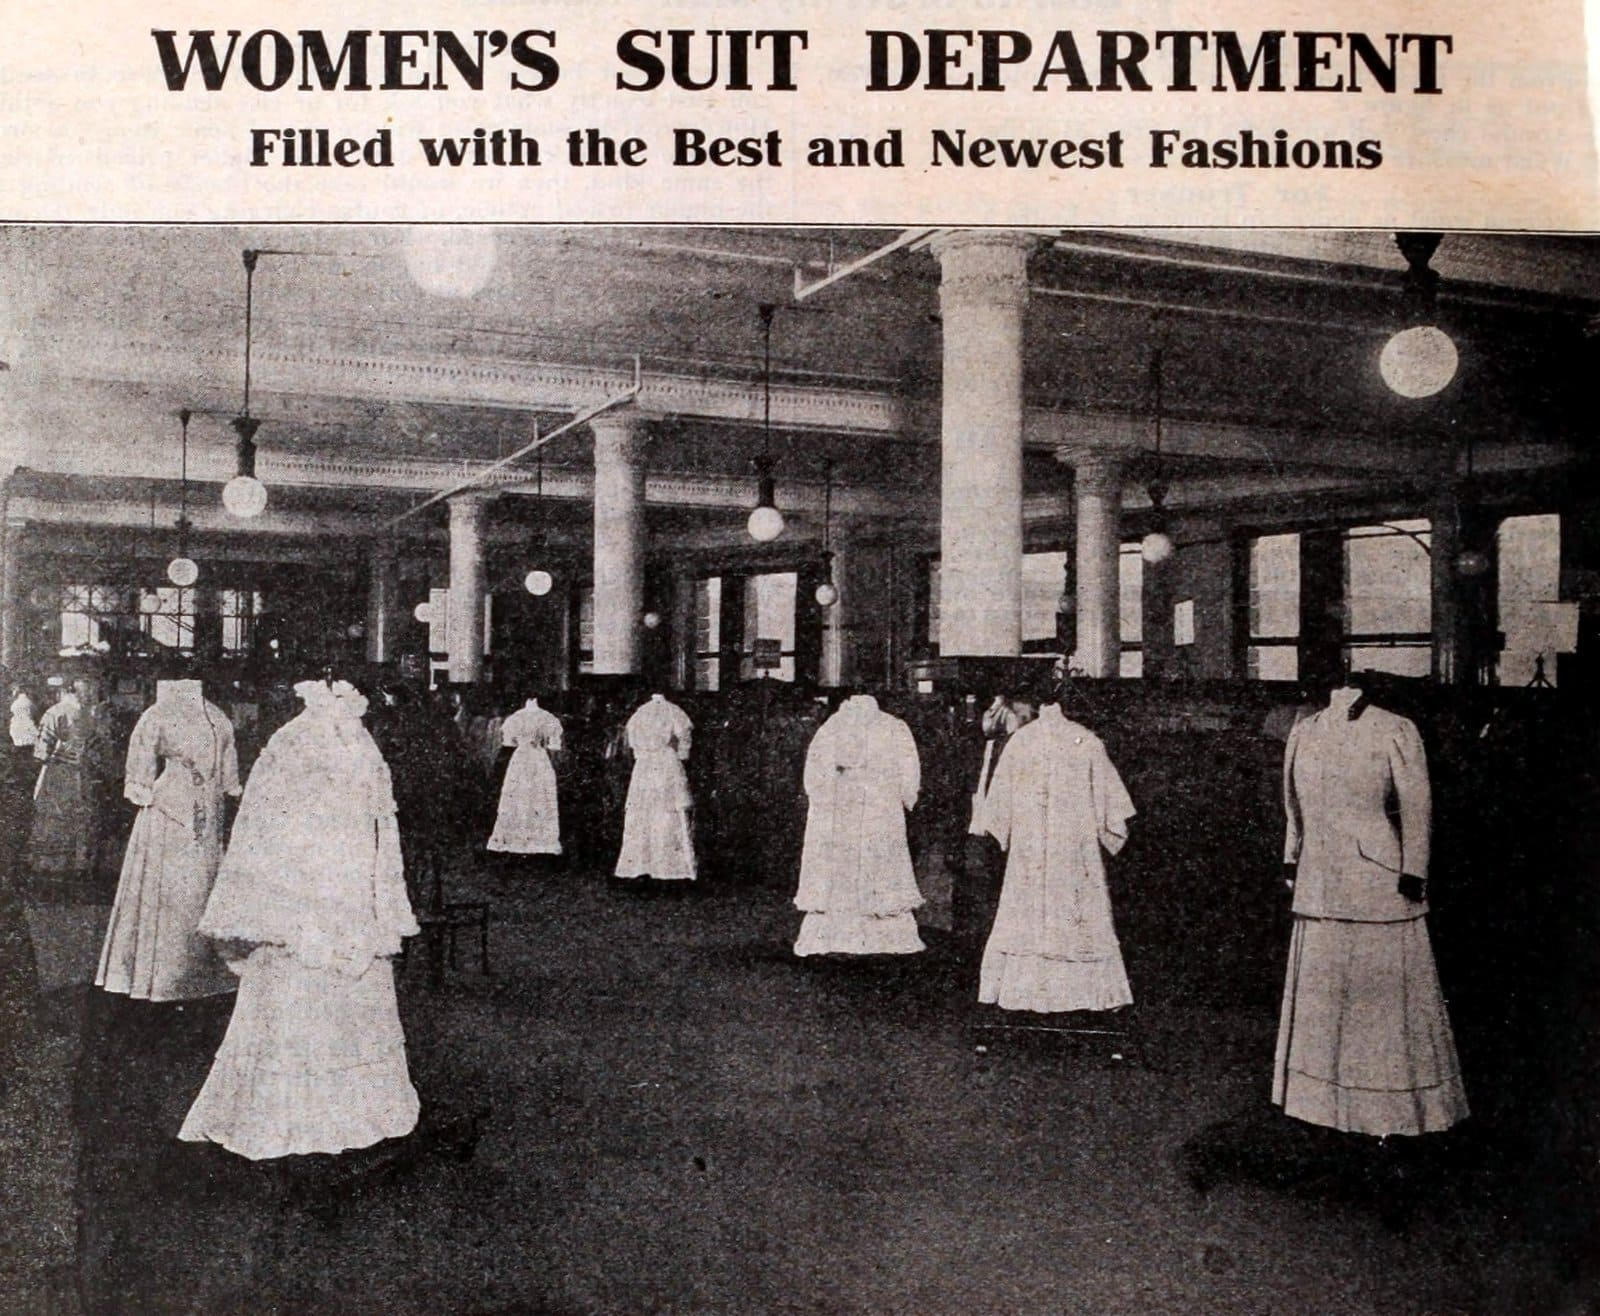 Women's suit department at the vintage Macy's store in NYC (1900s)